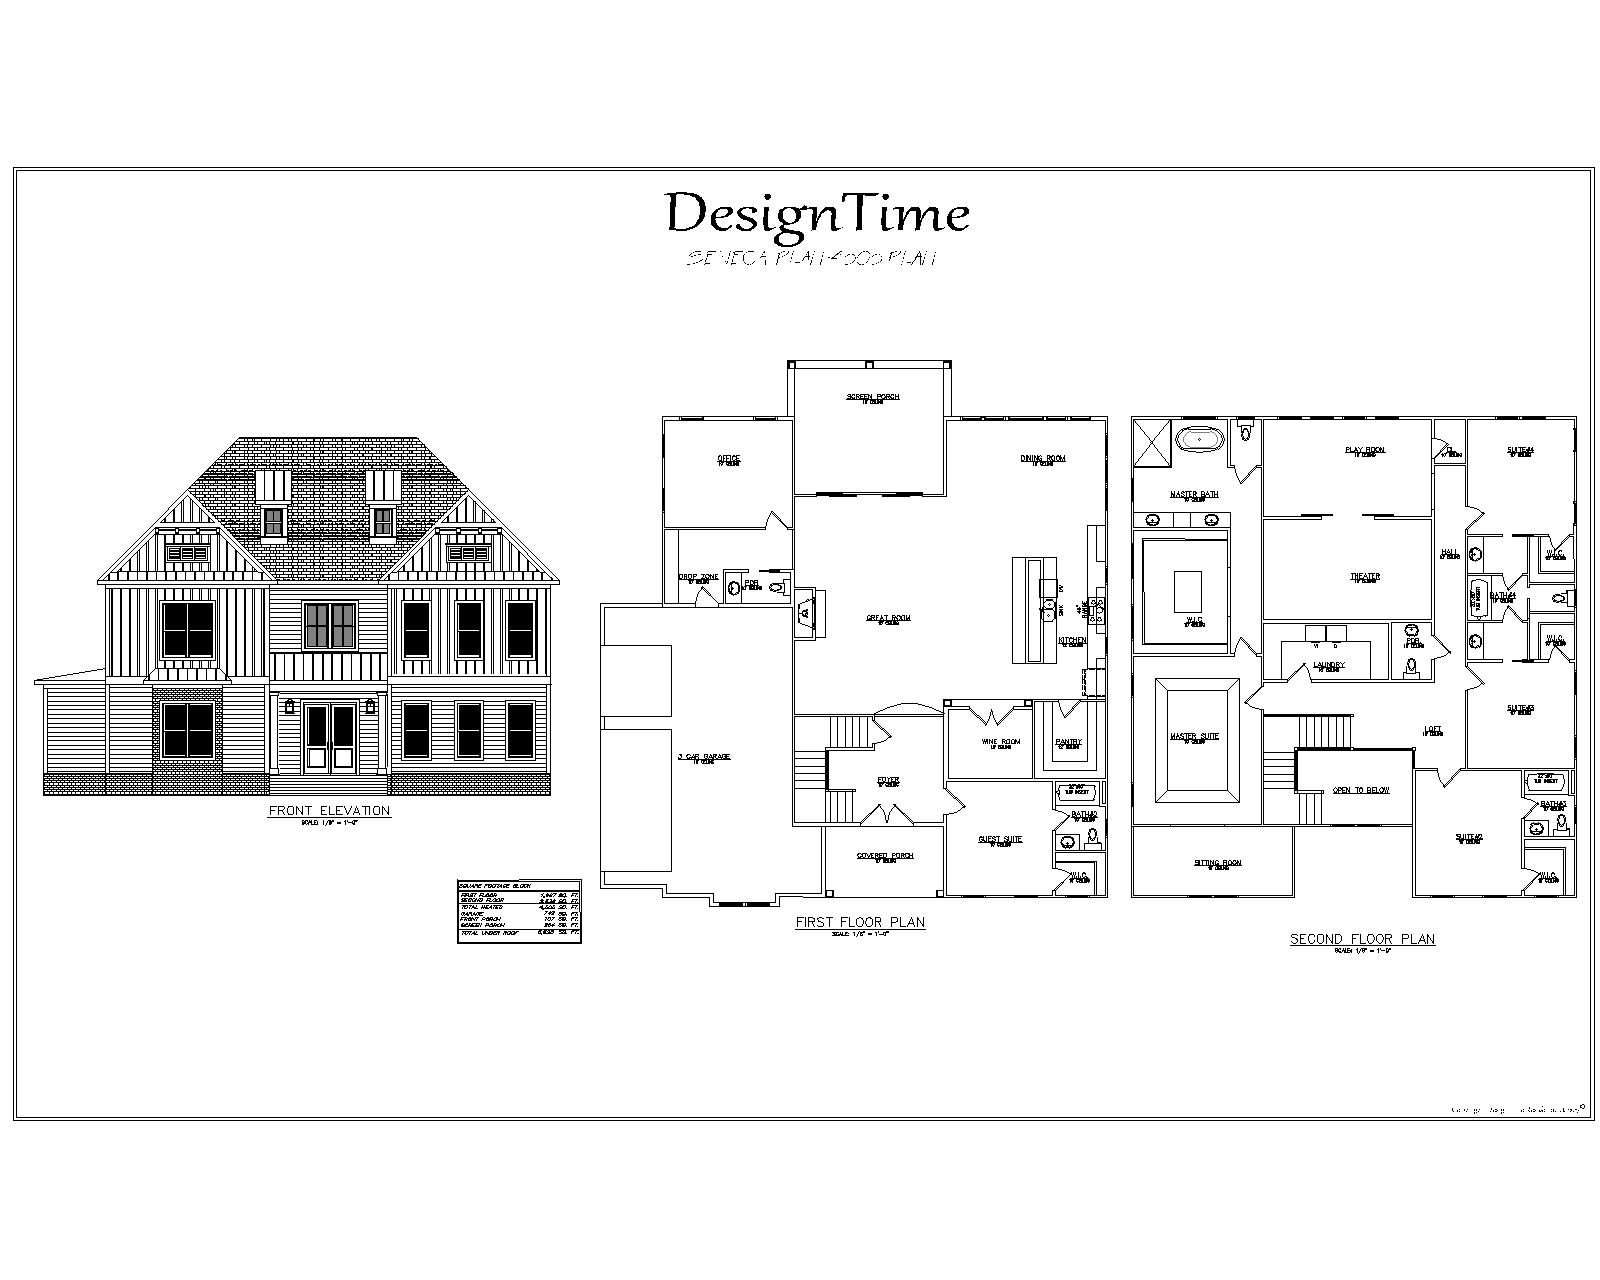 Eclectic Custom Home Design Plan | Design Time